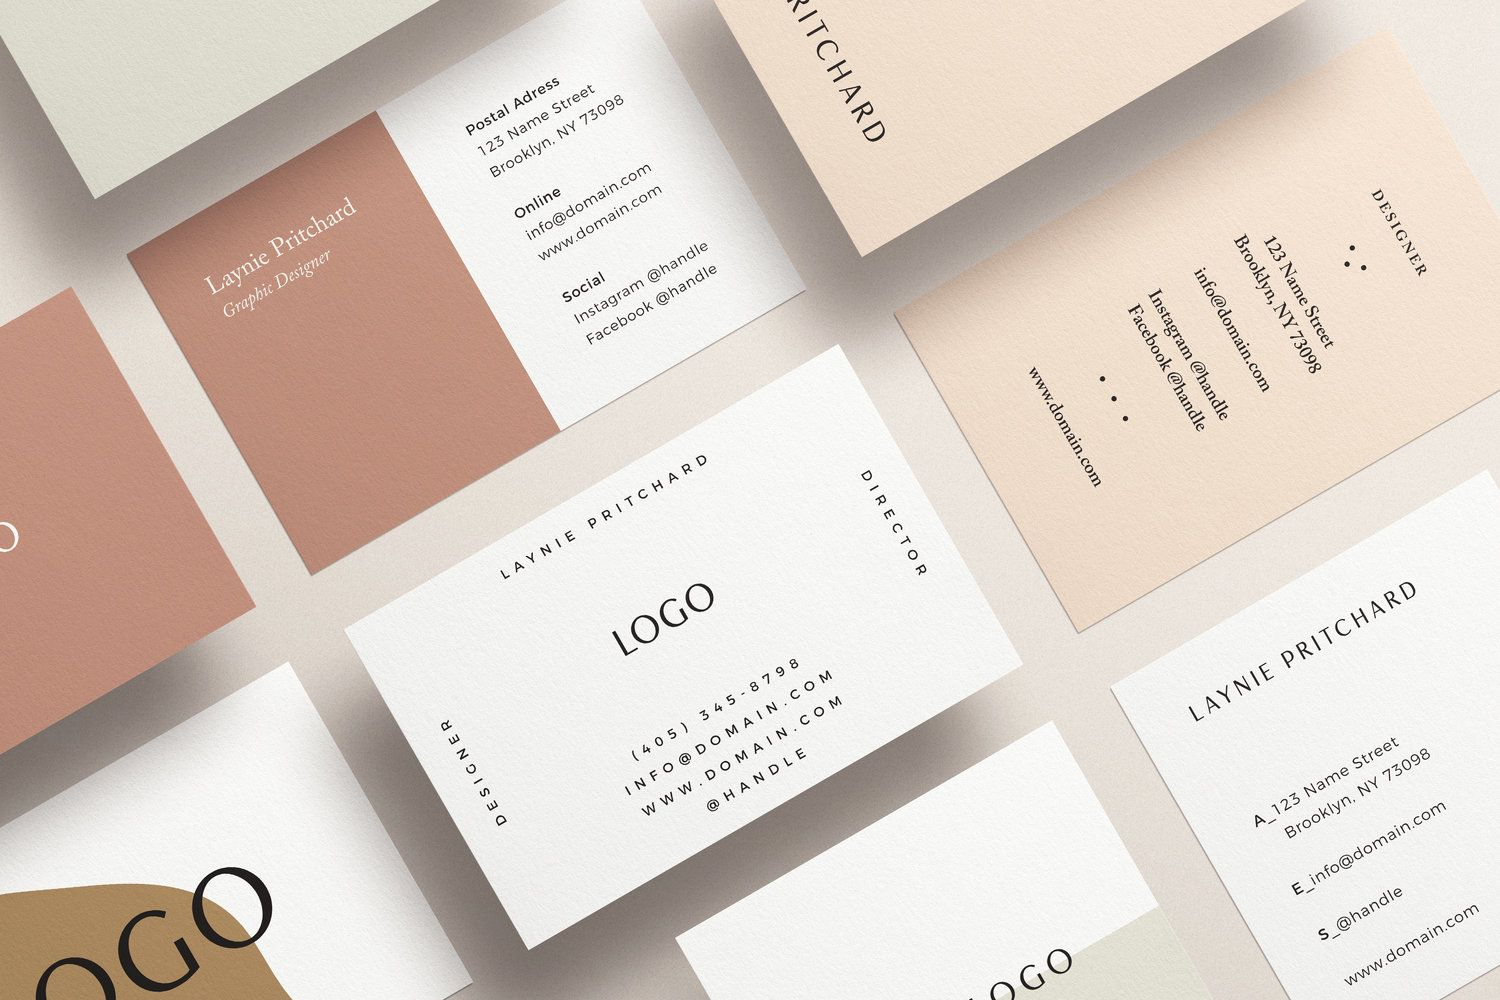 Free Business Card Templates Mint Lane Free Business Card Templates Free Business Cards Marketing Business Card